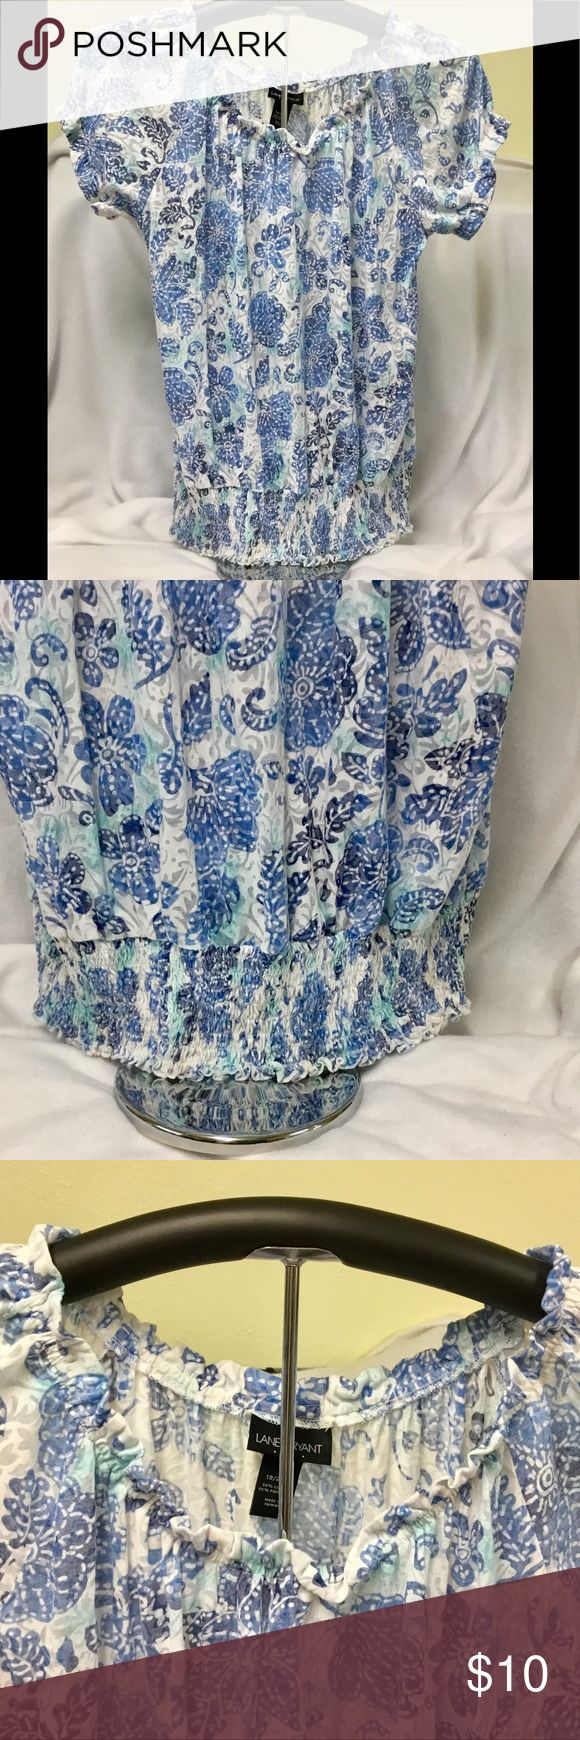 Lane Bryant Plus Size 18/20W Short Sleeve Top Lane Bryant Plus Size Short Sleeve Top with Elastic Bottom, Sleeves, & Neckline. Cotton Polyester cutout floral material in blue, green, & white background.  Shirt in Very Good Used Condition. Lane Bryant Tops Blouses